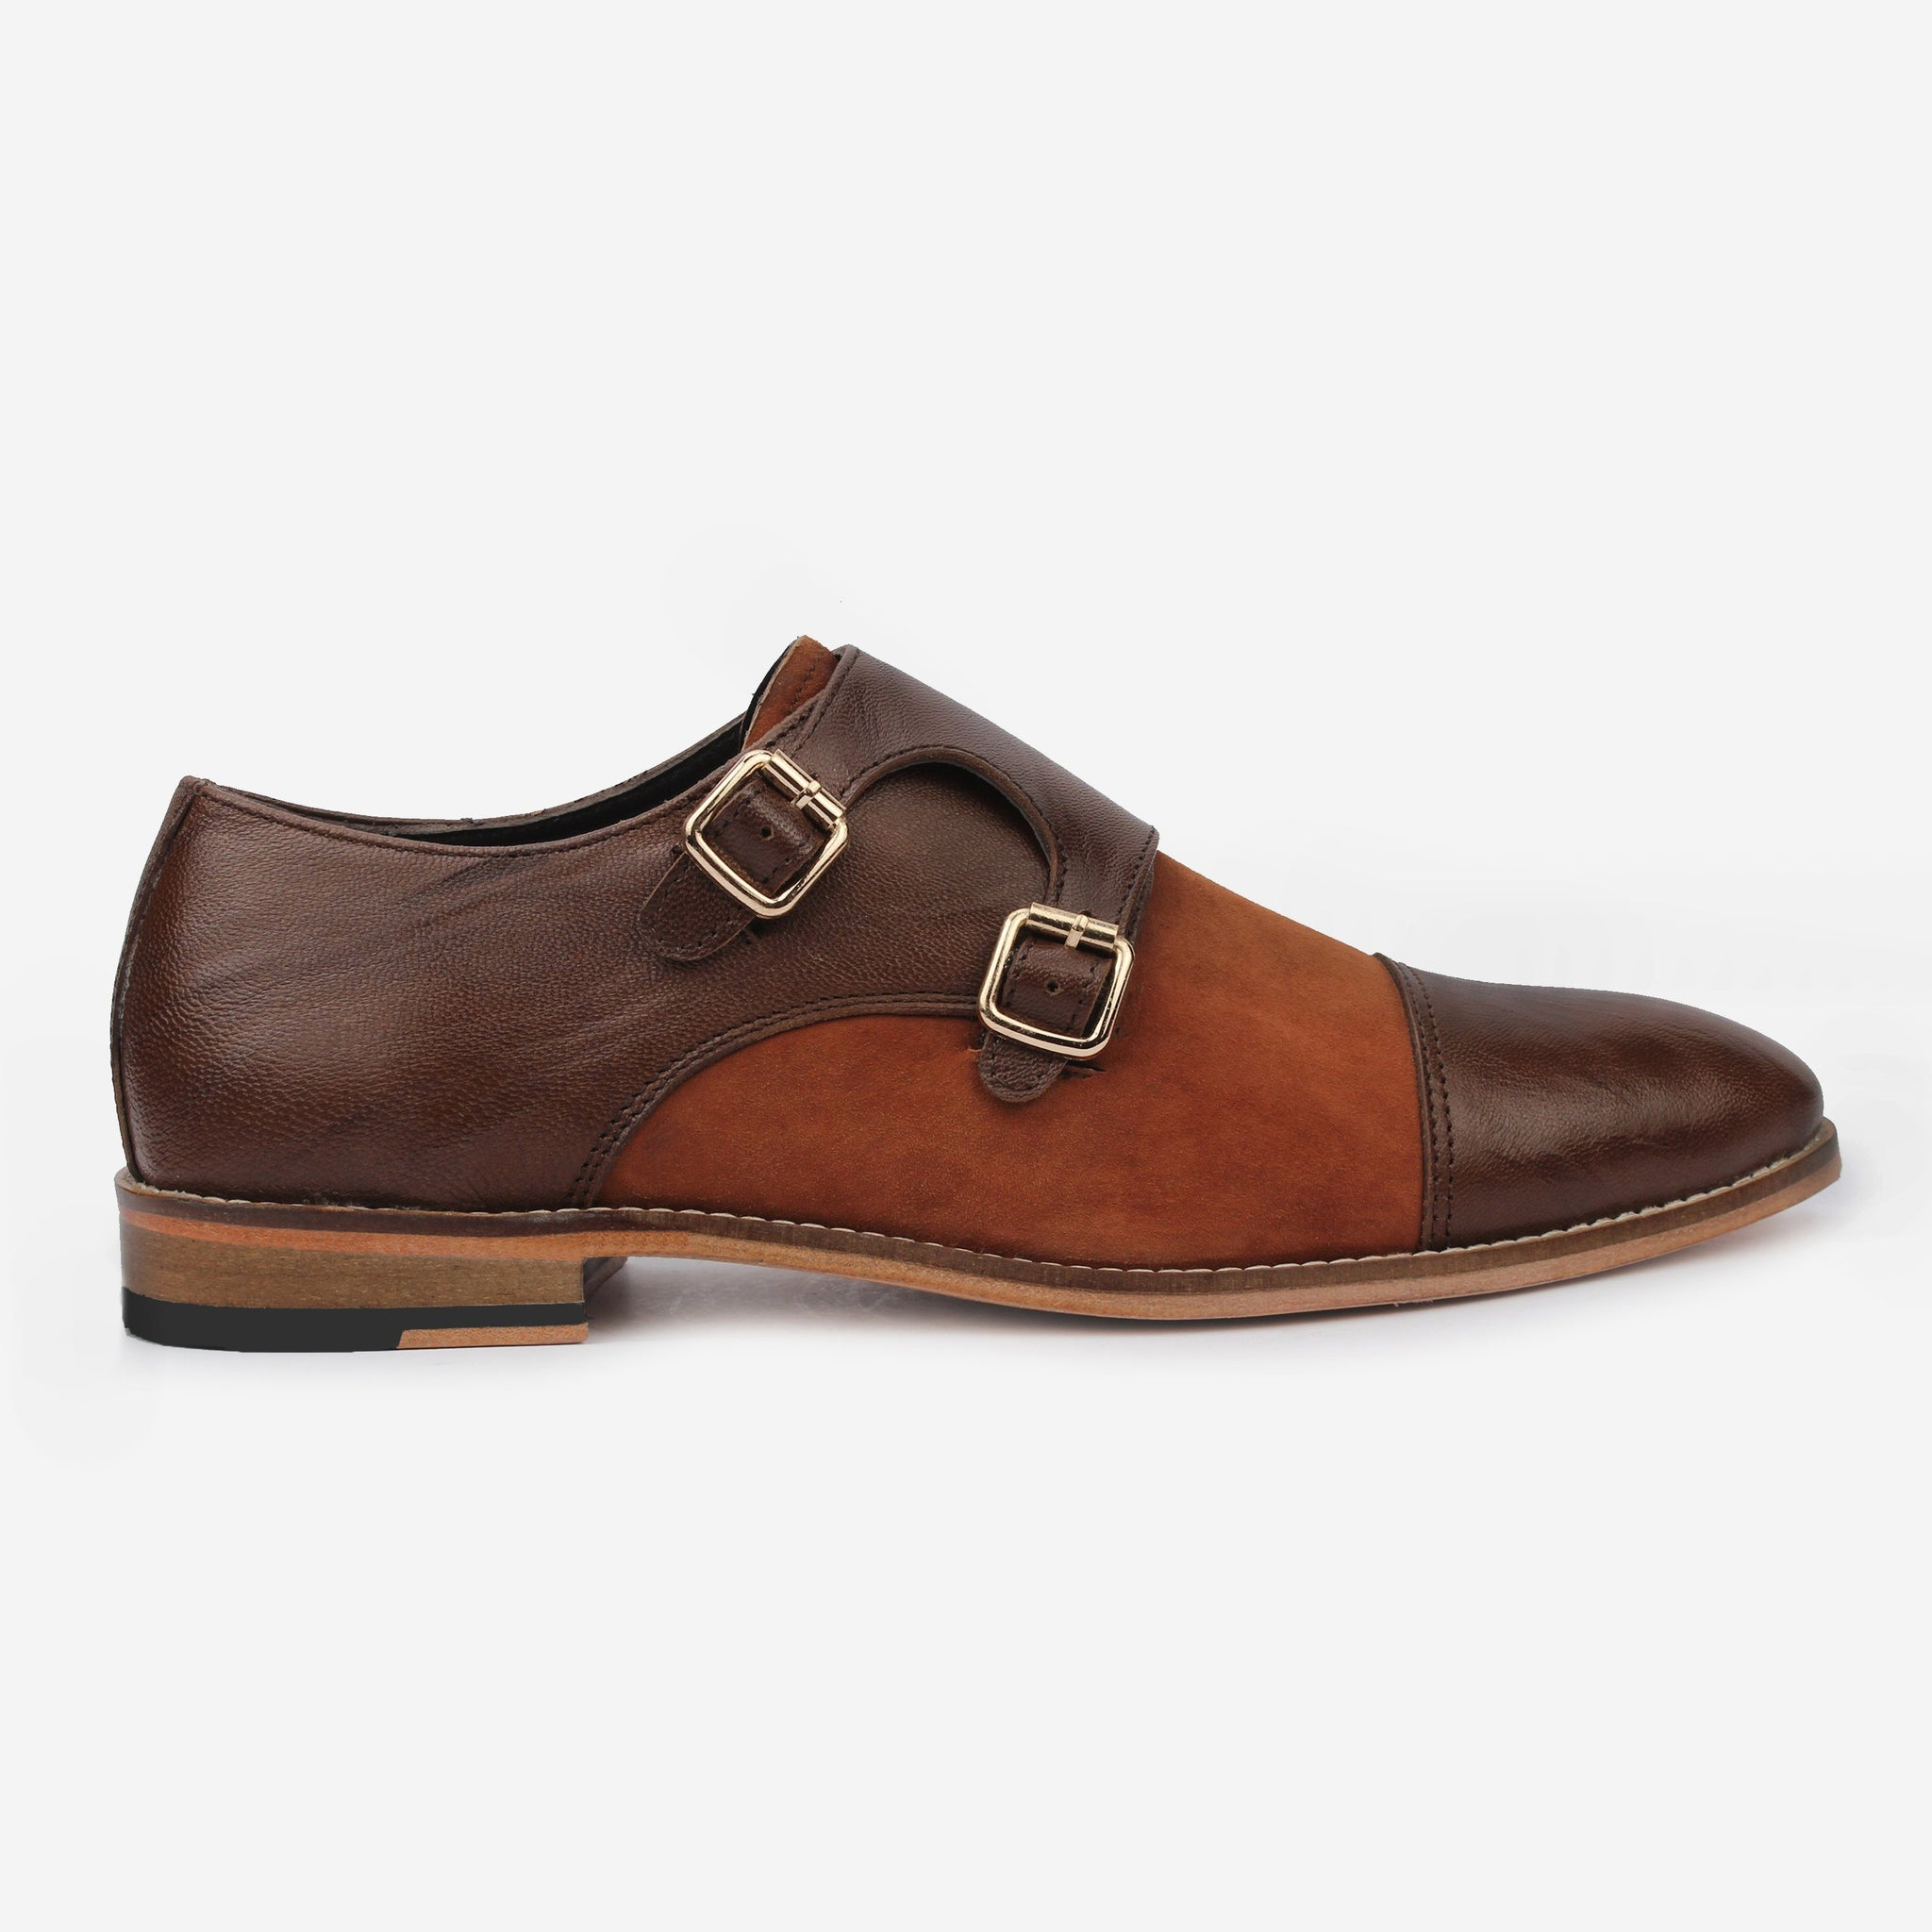 Taurus Monk Chocolate Brown Thebootsco